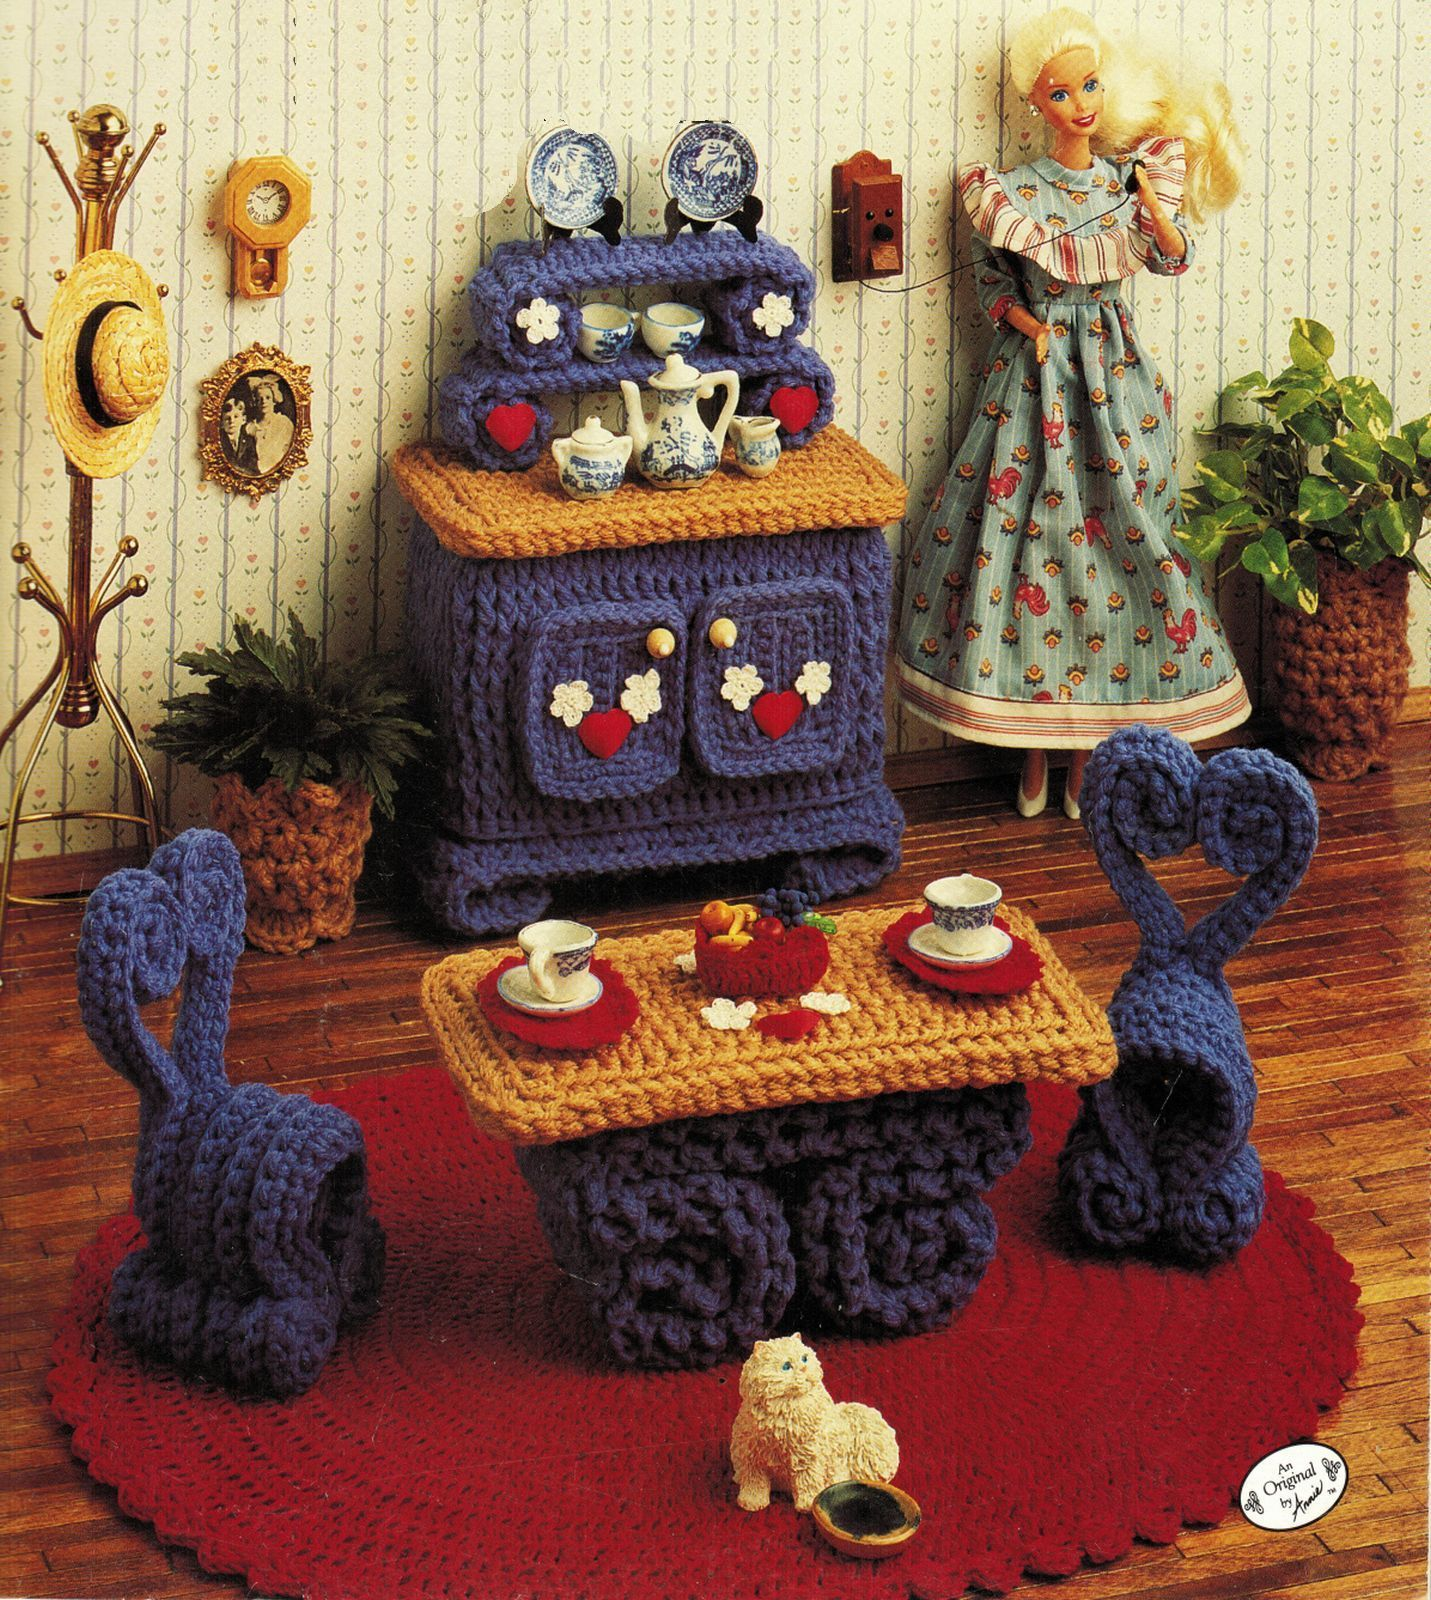 Primary image for Annie's Attic Fashion Doll Furniture Buffet Table Chair Rug Crochet Patterns